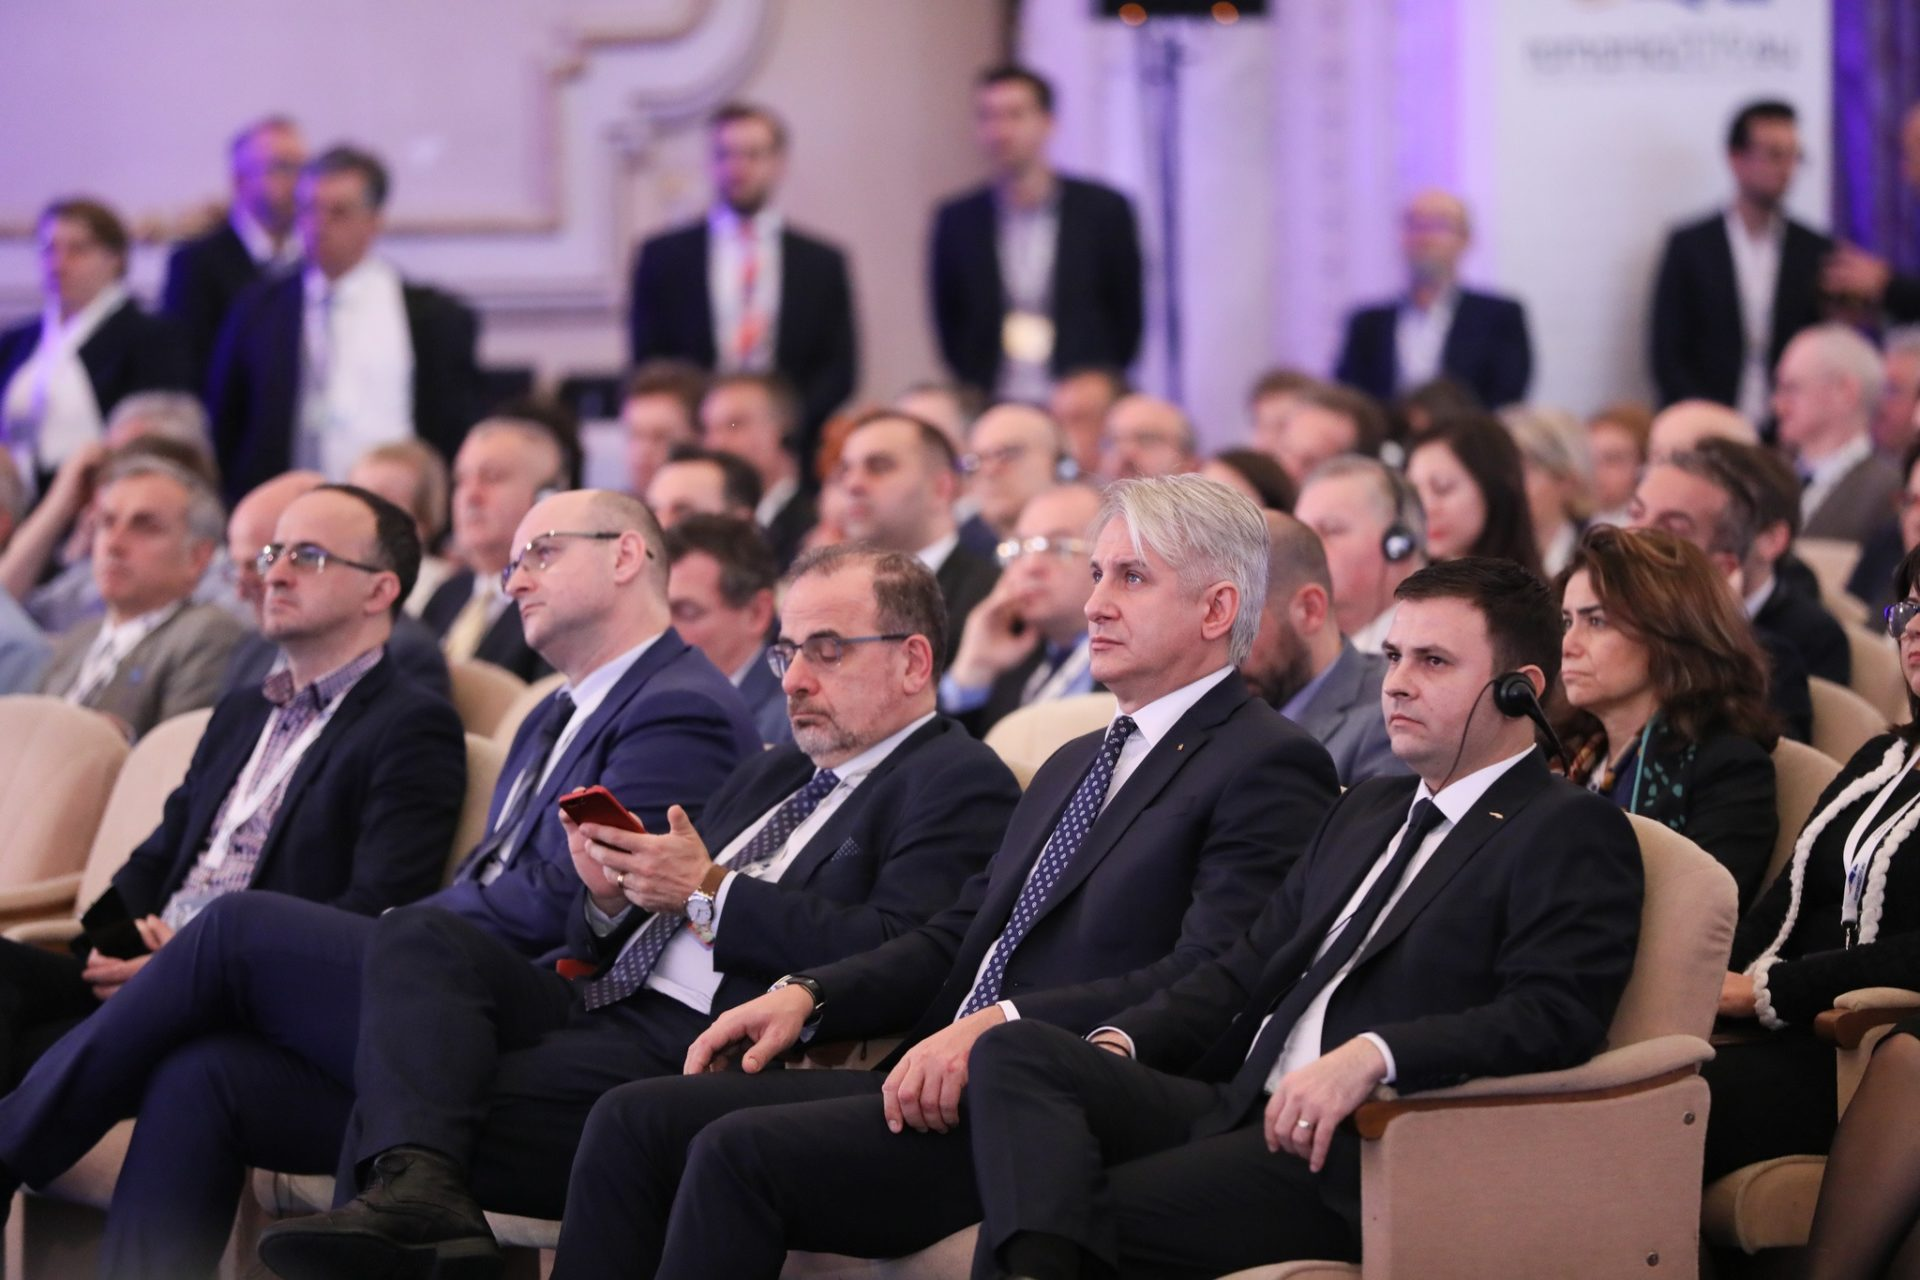 The 8th European Summit of Regions and Cities, day two